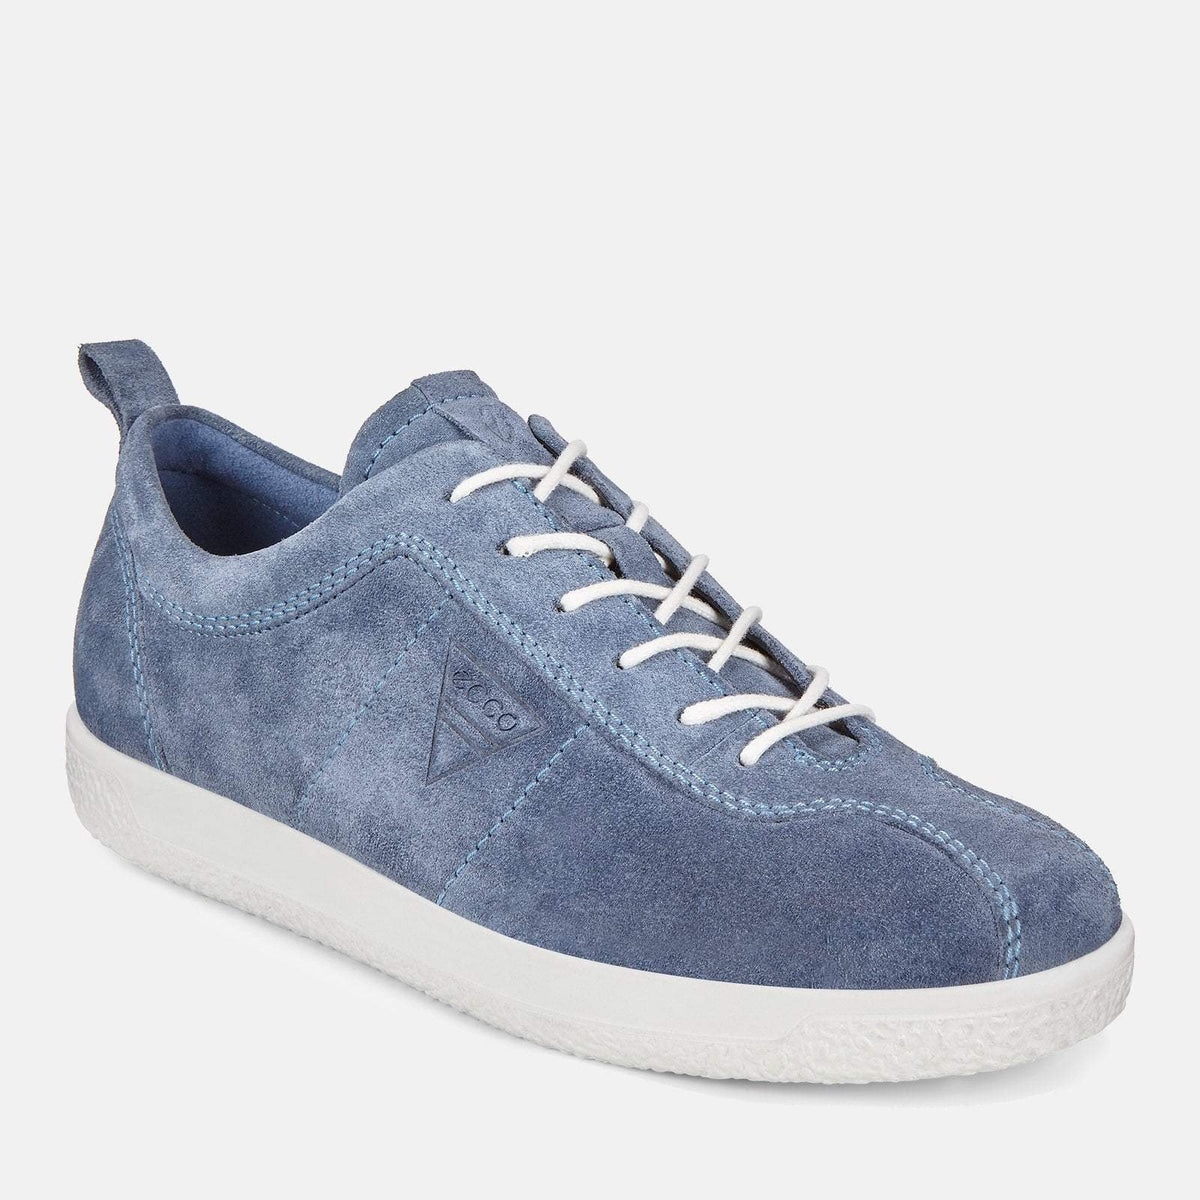 cdb871e8338 Soft 1 W 400503 05471 Retro Blue - Ecco Blue Soft Leather Ladies Trainers